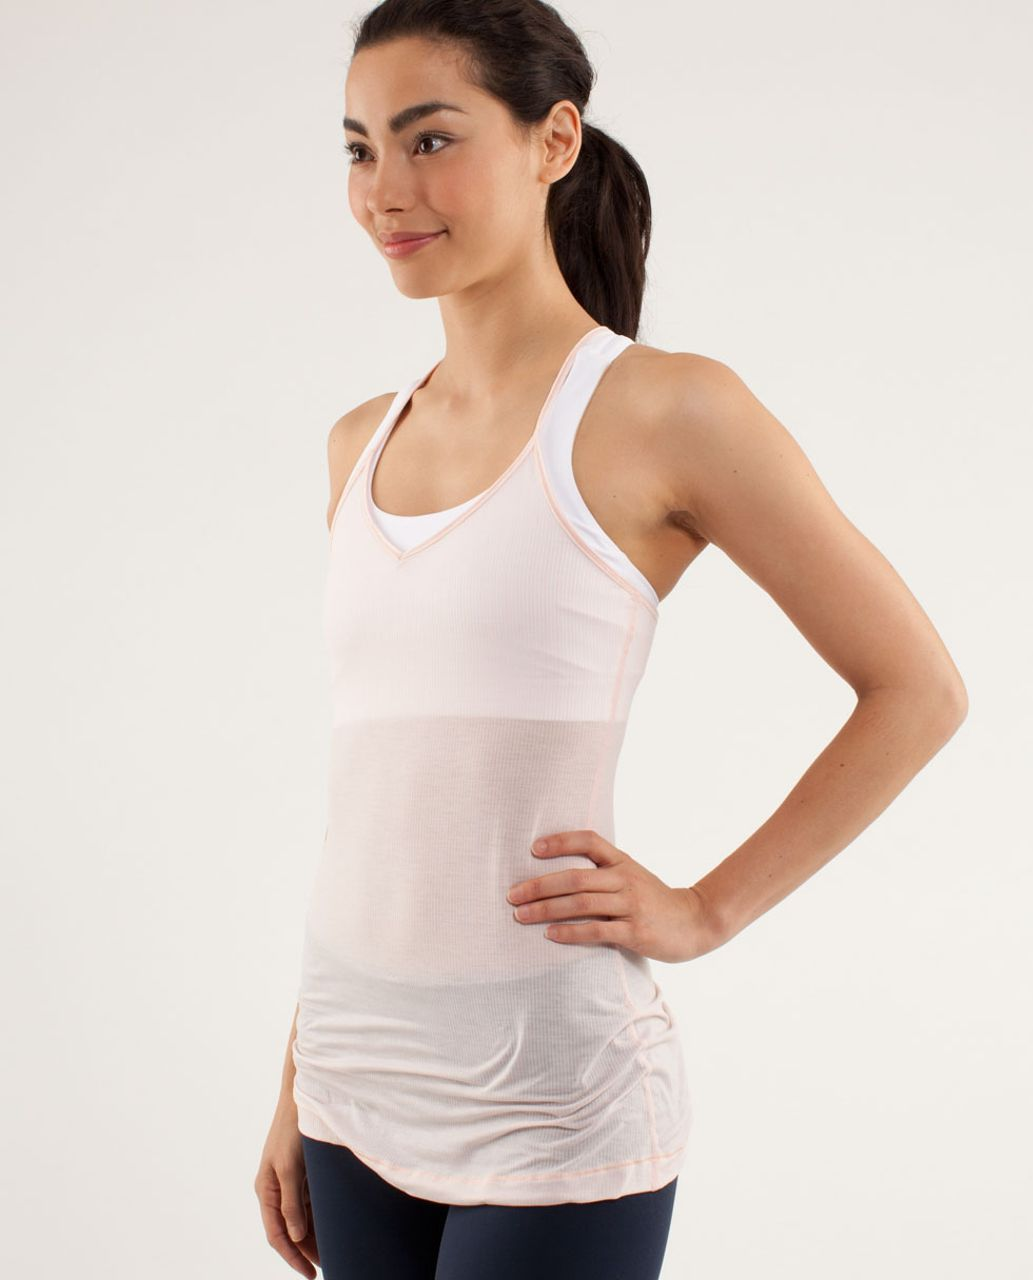 Lululemon Light Hearted Tank - Tonka Stripe Parfait Pink